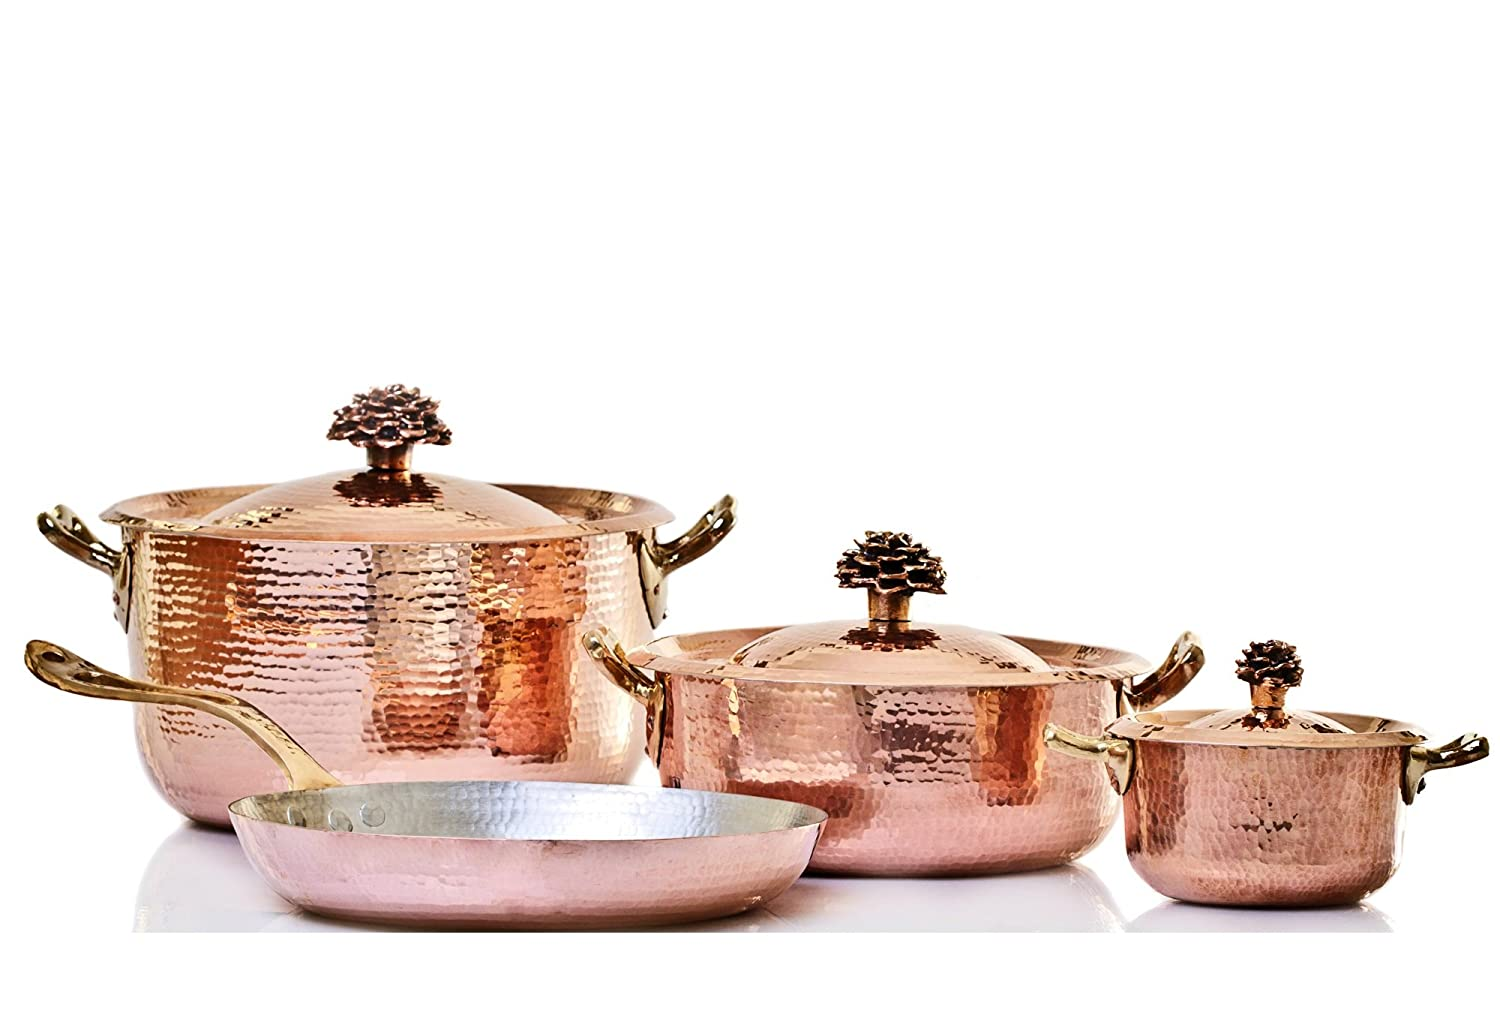 Amoretti Brothers Hammered Copper Cookware, 7 Piece Set